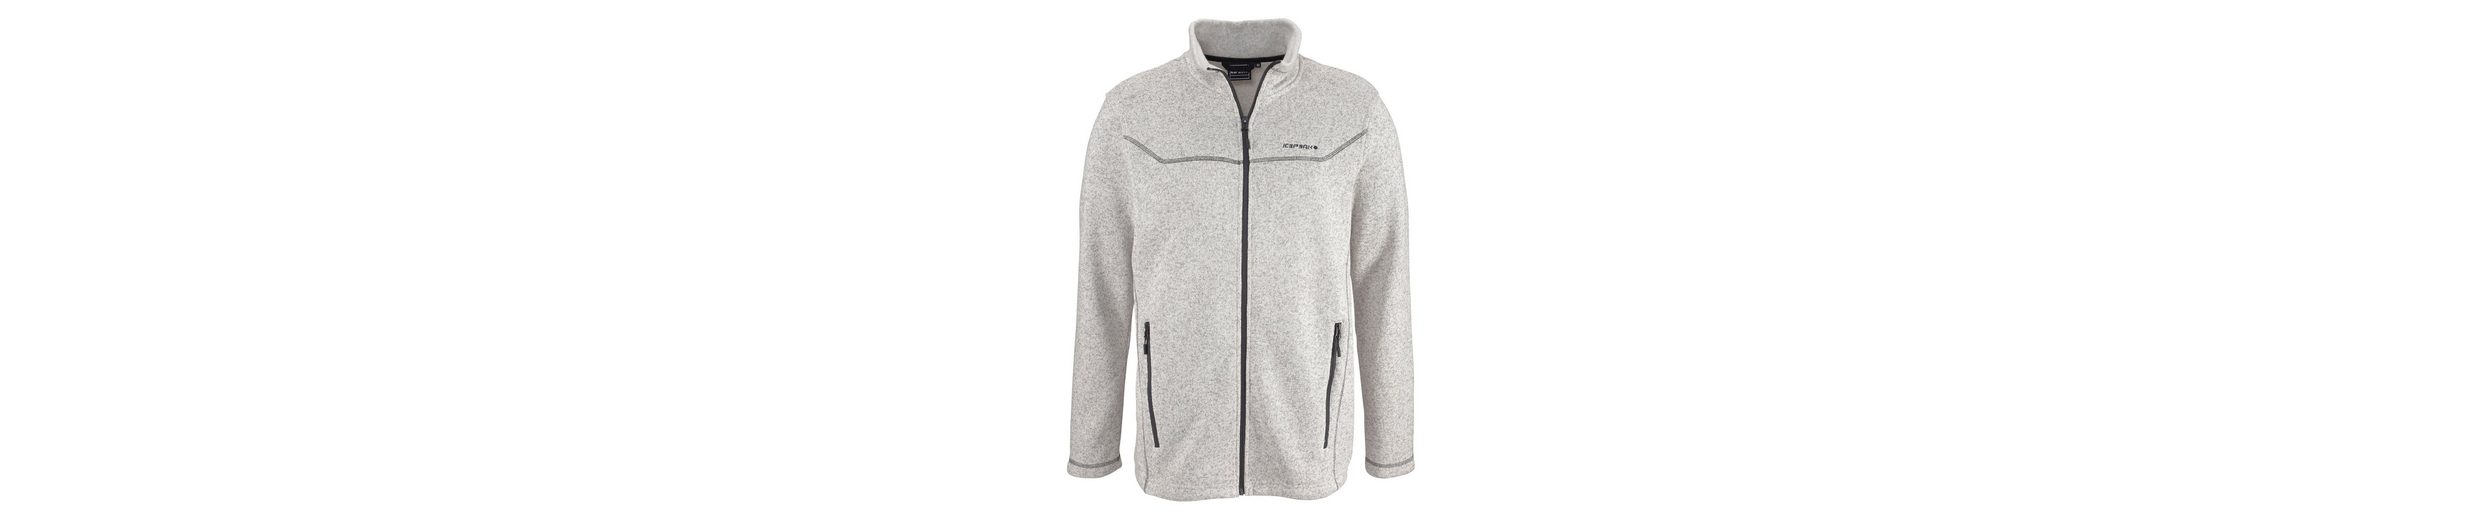 Icepeak PERRY Icepeak Strickjacke PERRY Icepeak Strickjacke Strickjacke PERRY Icepeak xfAwFnq